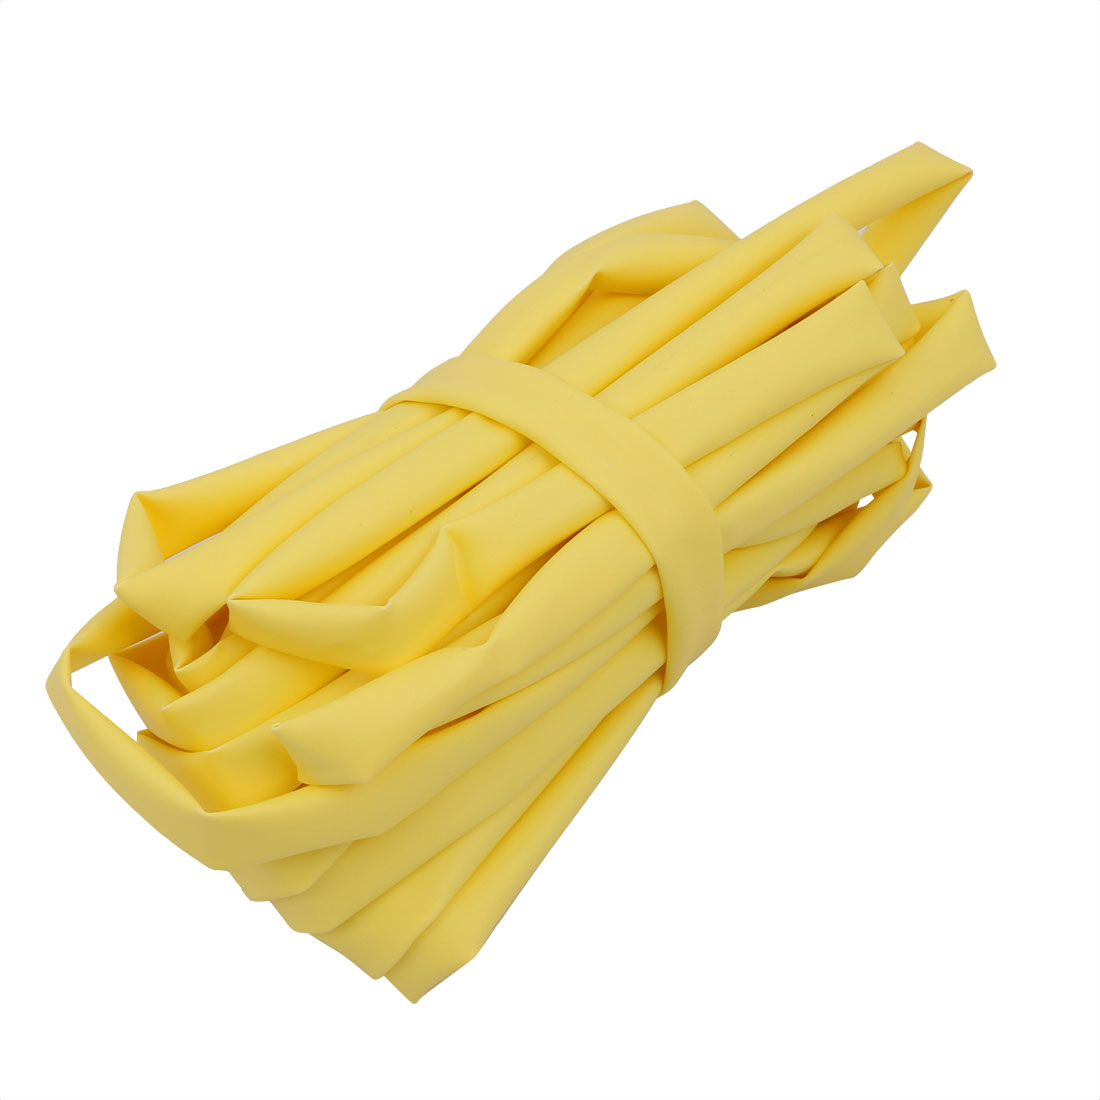 16.4Ft Length 6mm Inner Dia Insulated Heat Shrink Tube Sleeve Wire Wrap Yellow